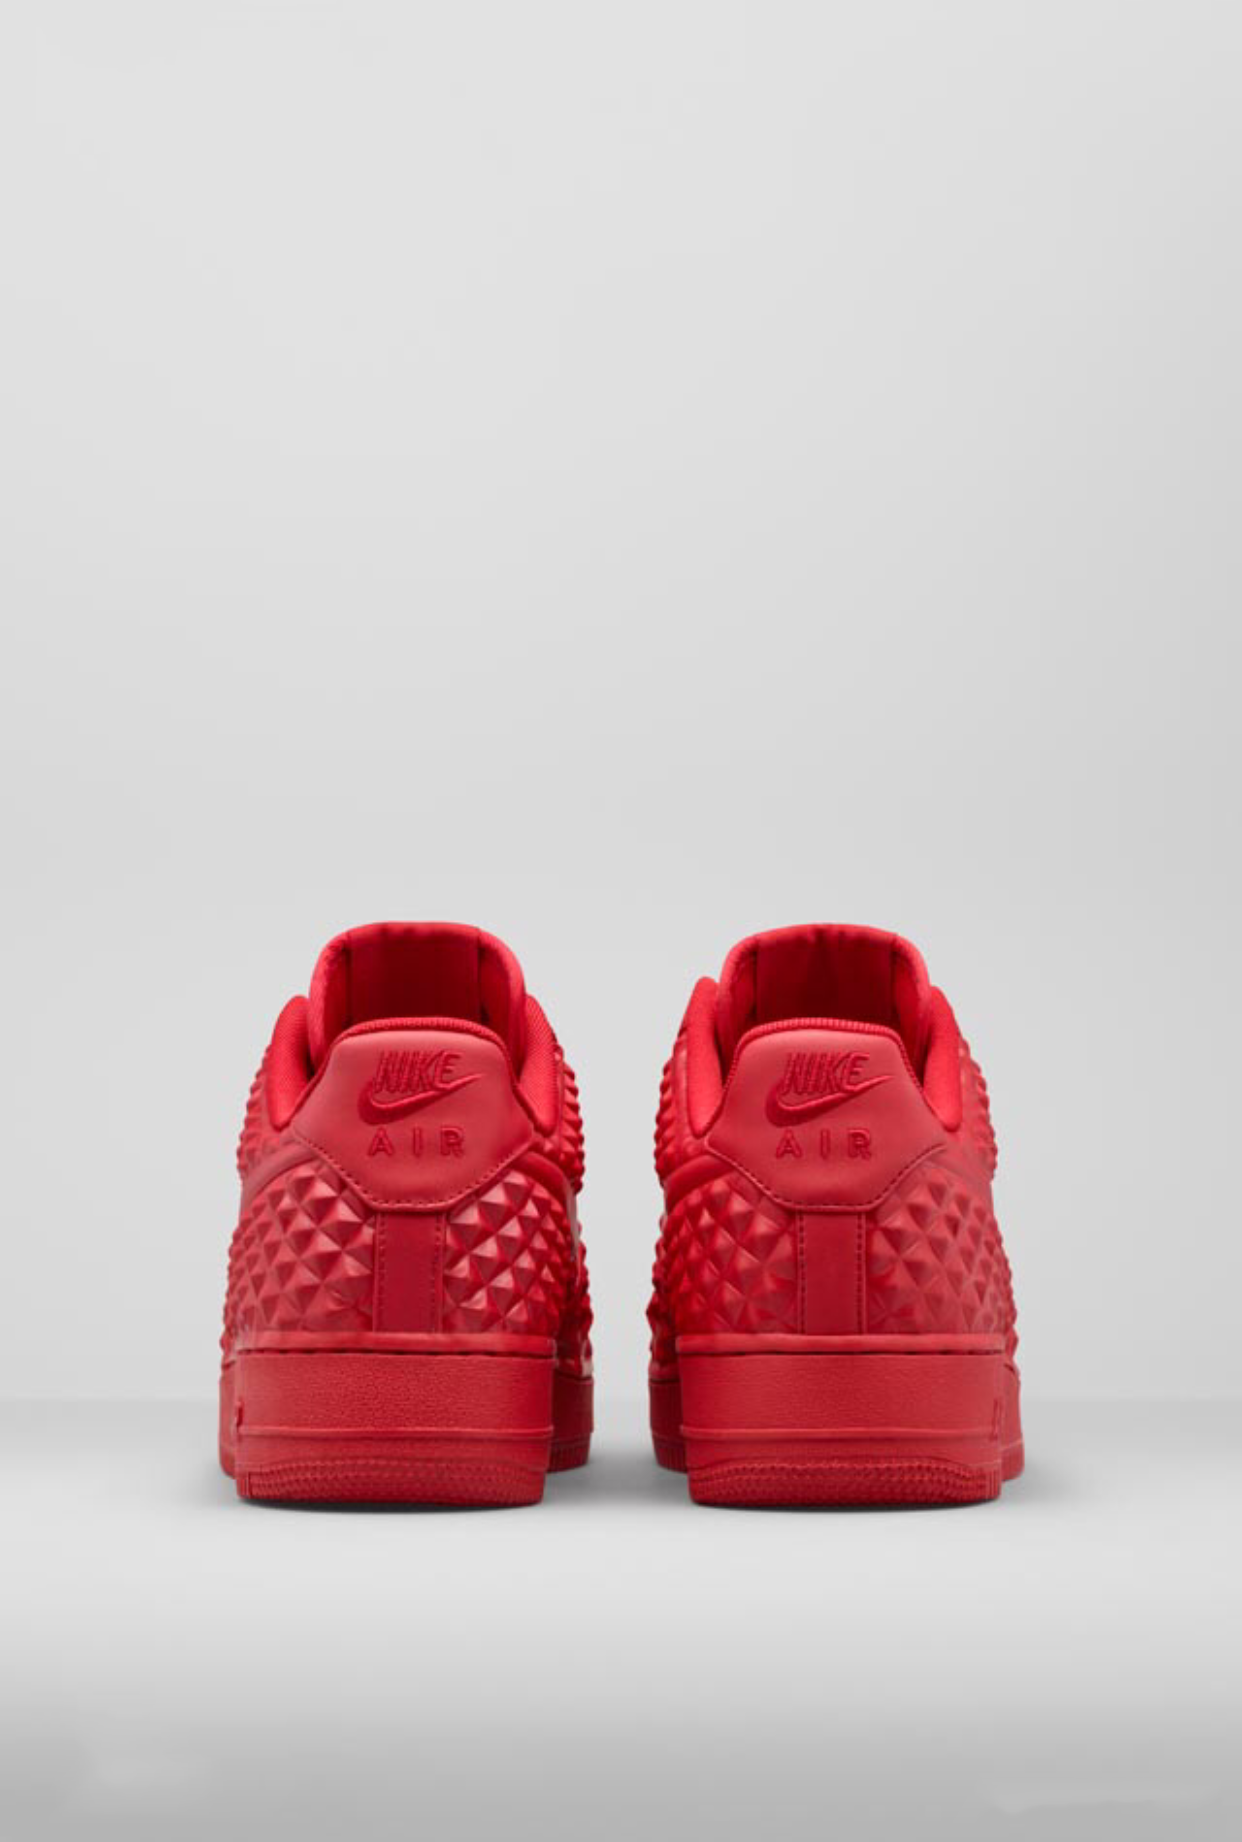 nike air force 1 red stars of death